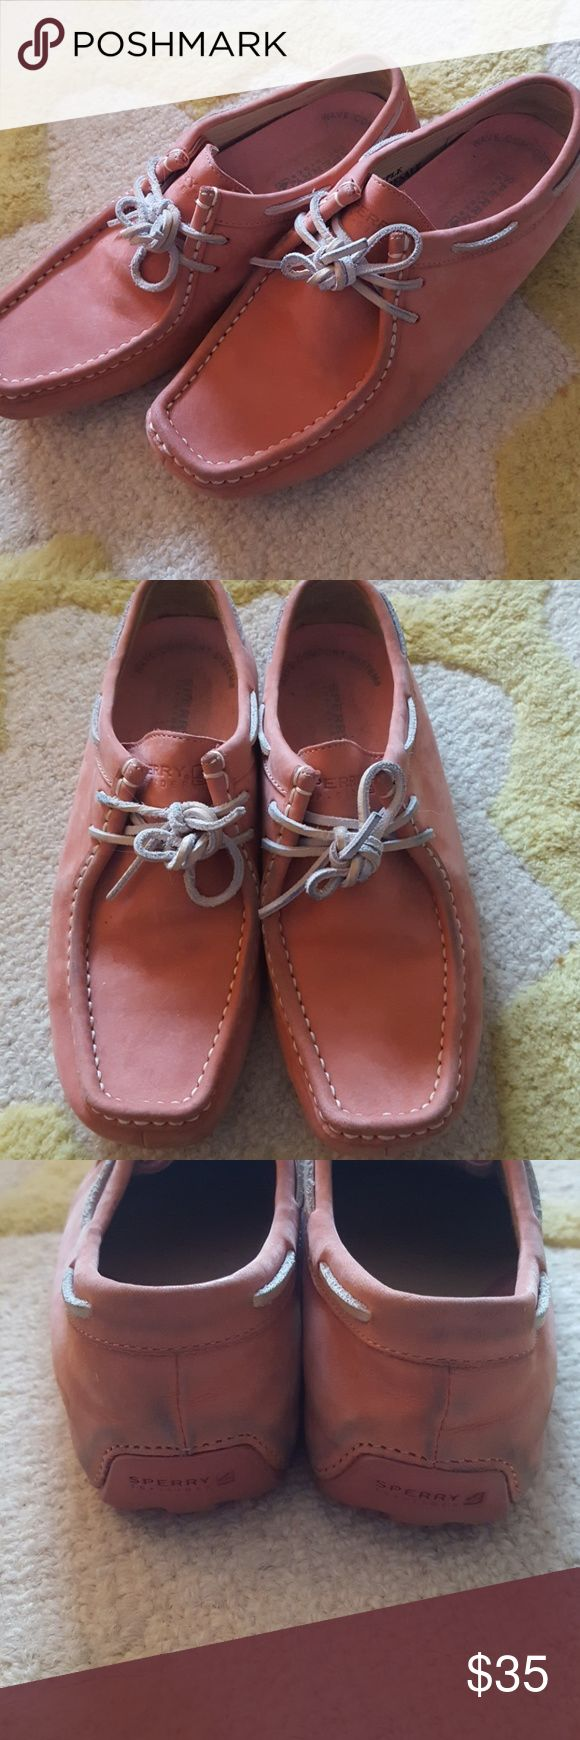 Sperry Mocasines Super cute and comfy pre-loved Sperry Mocasines. Some signs of wear (see picutres) These were from a sample sale. Sperry Shoes Moccasins